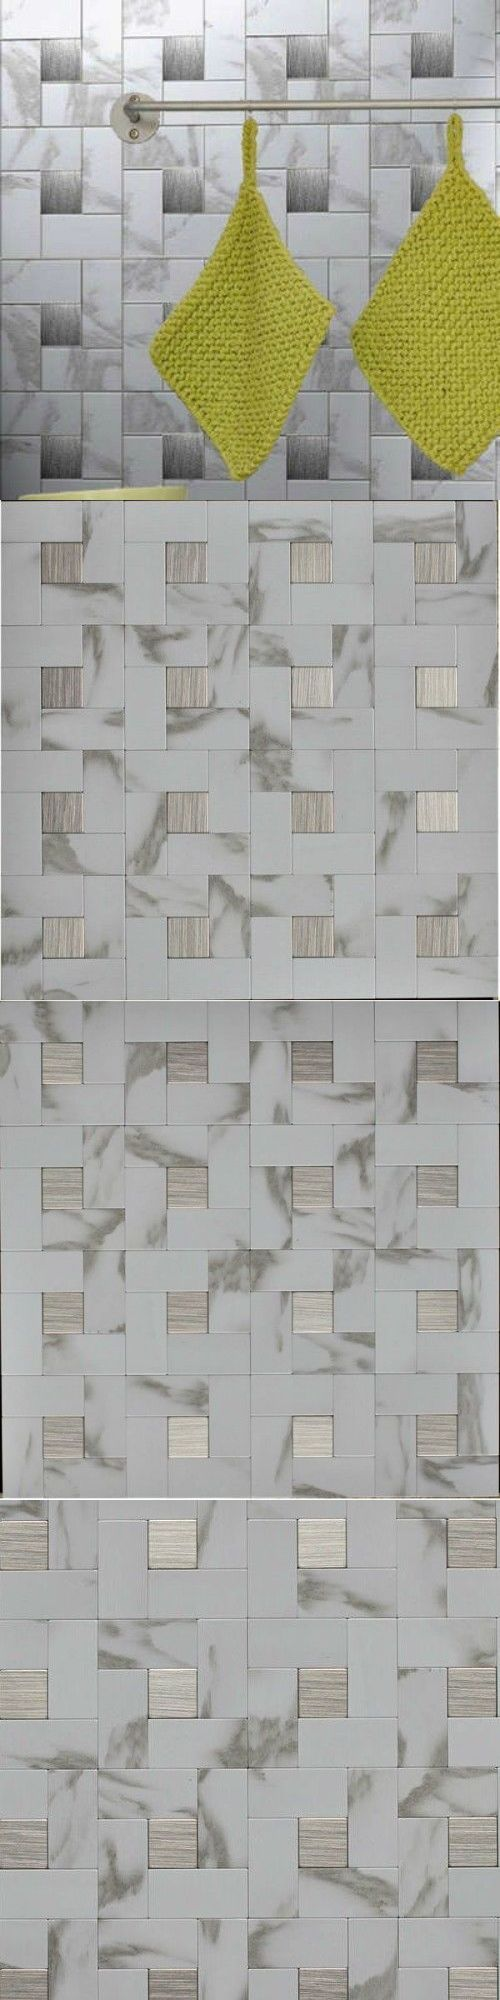 Other Wallpaper 52348: Self Adhesive Wall Tiles Peel And Stick Backsplash Kitchen Grey Gray White 6Pc -> BUY IT NOW ONLY: $79.91 on eBay!